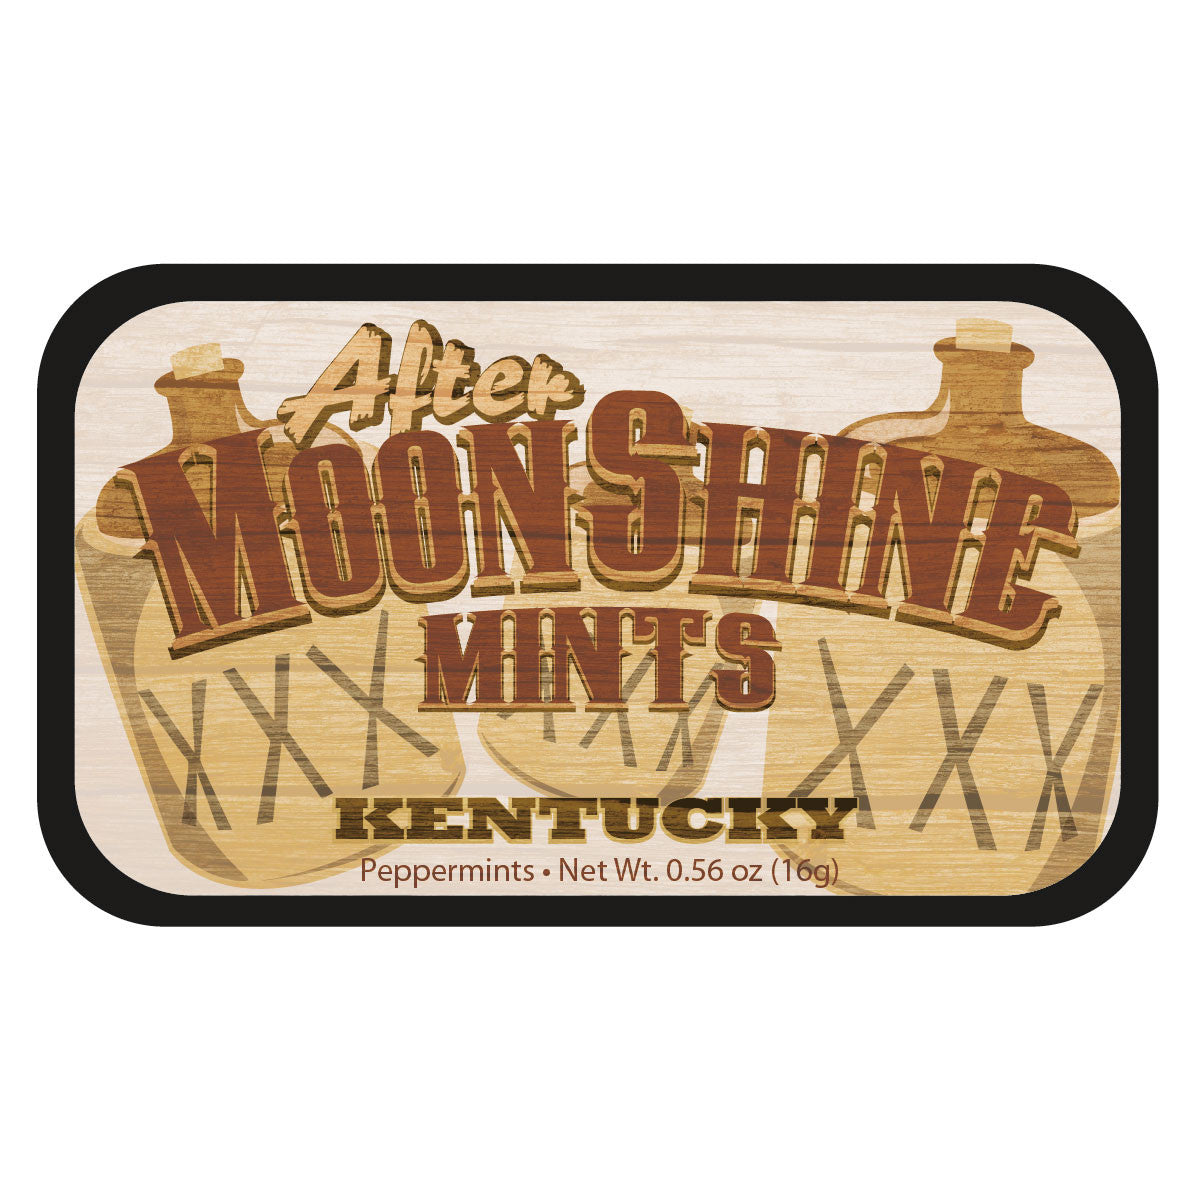 After Moonshine Kentucky  - 0951S